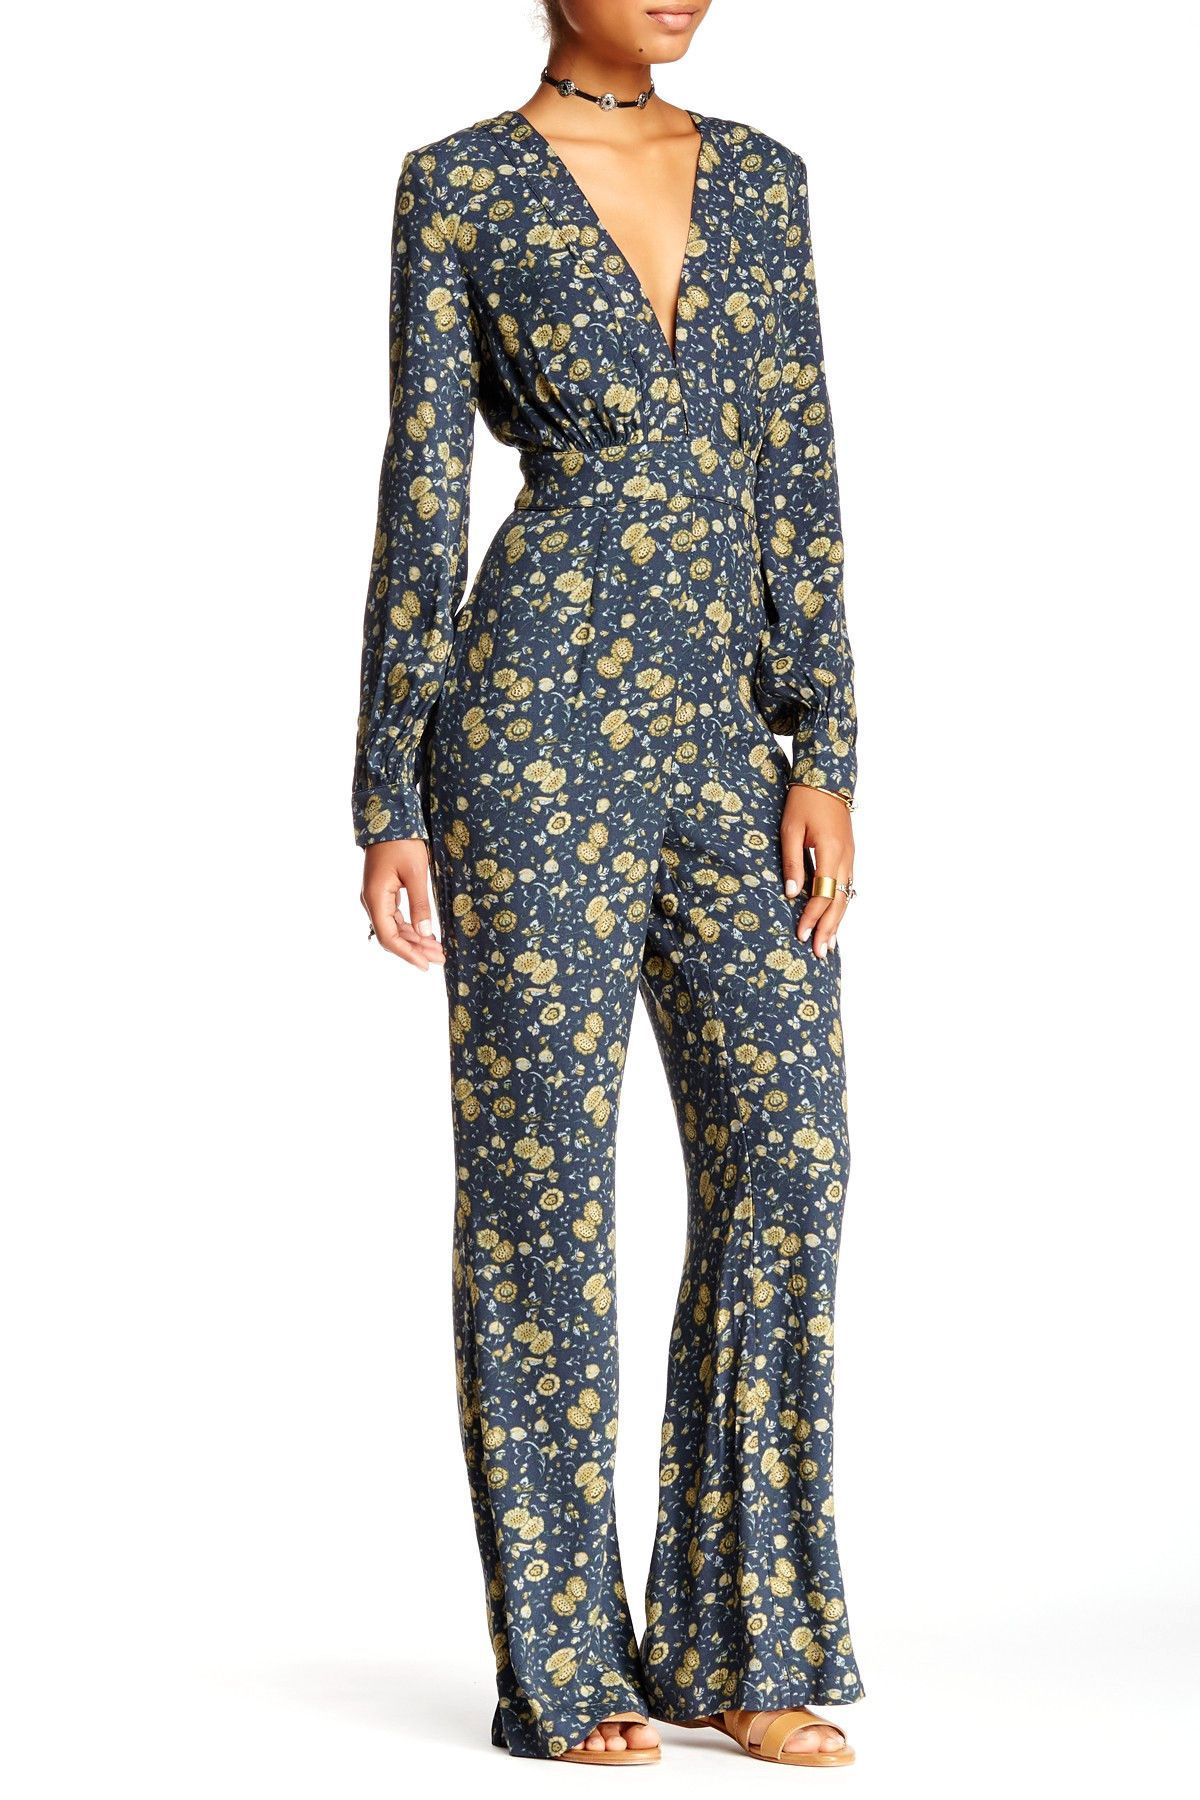 Free People Some Like It Hot Jumpsuit 10 Midnight Combo